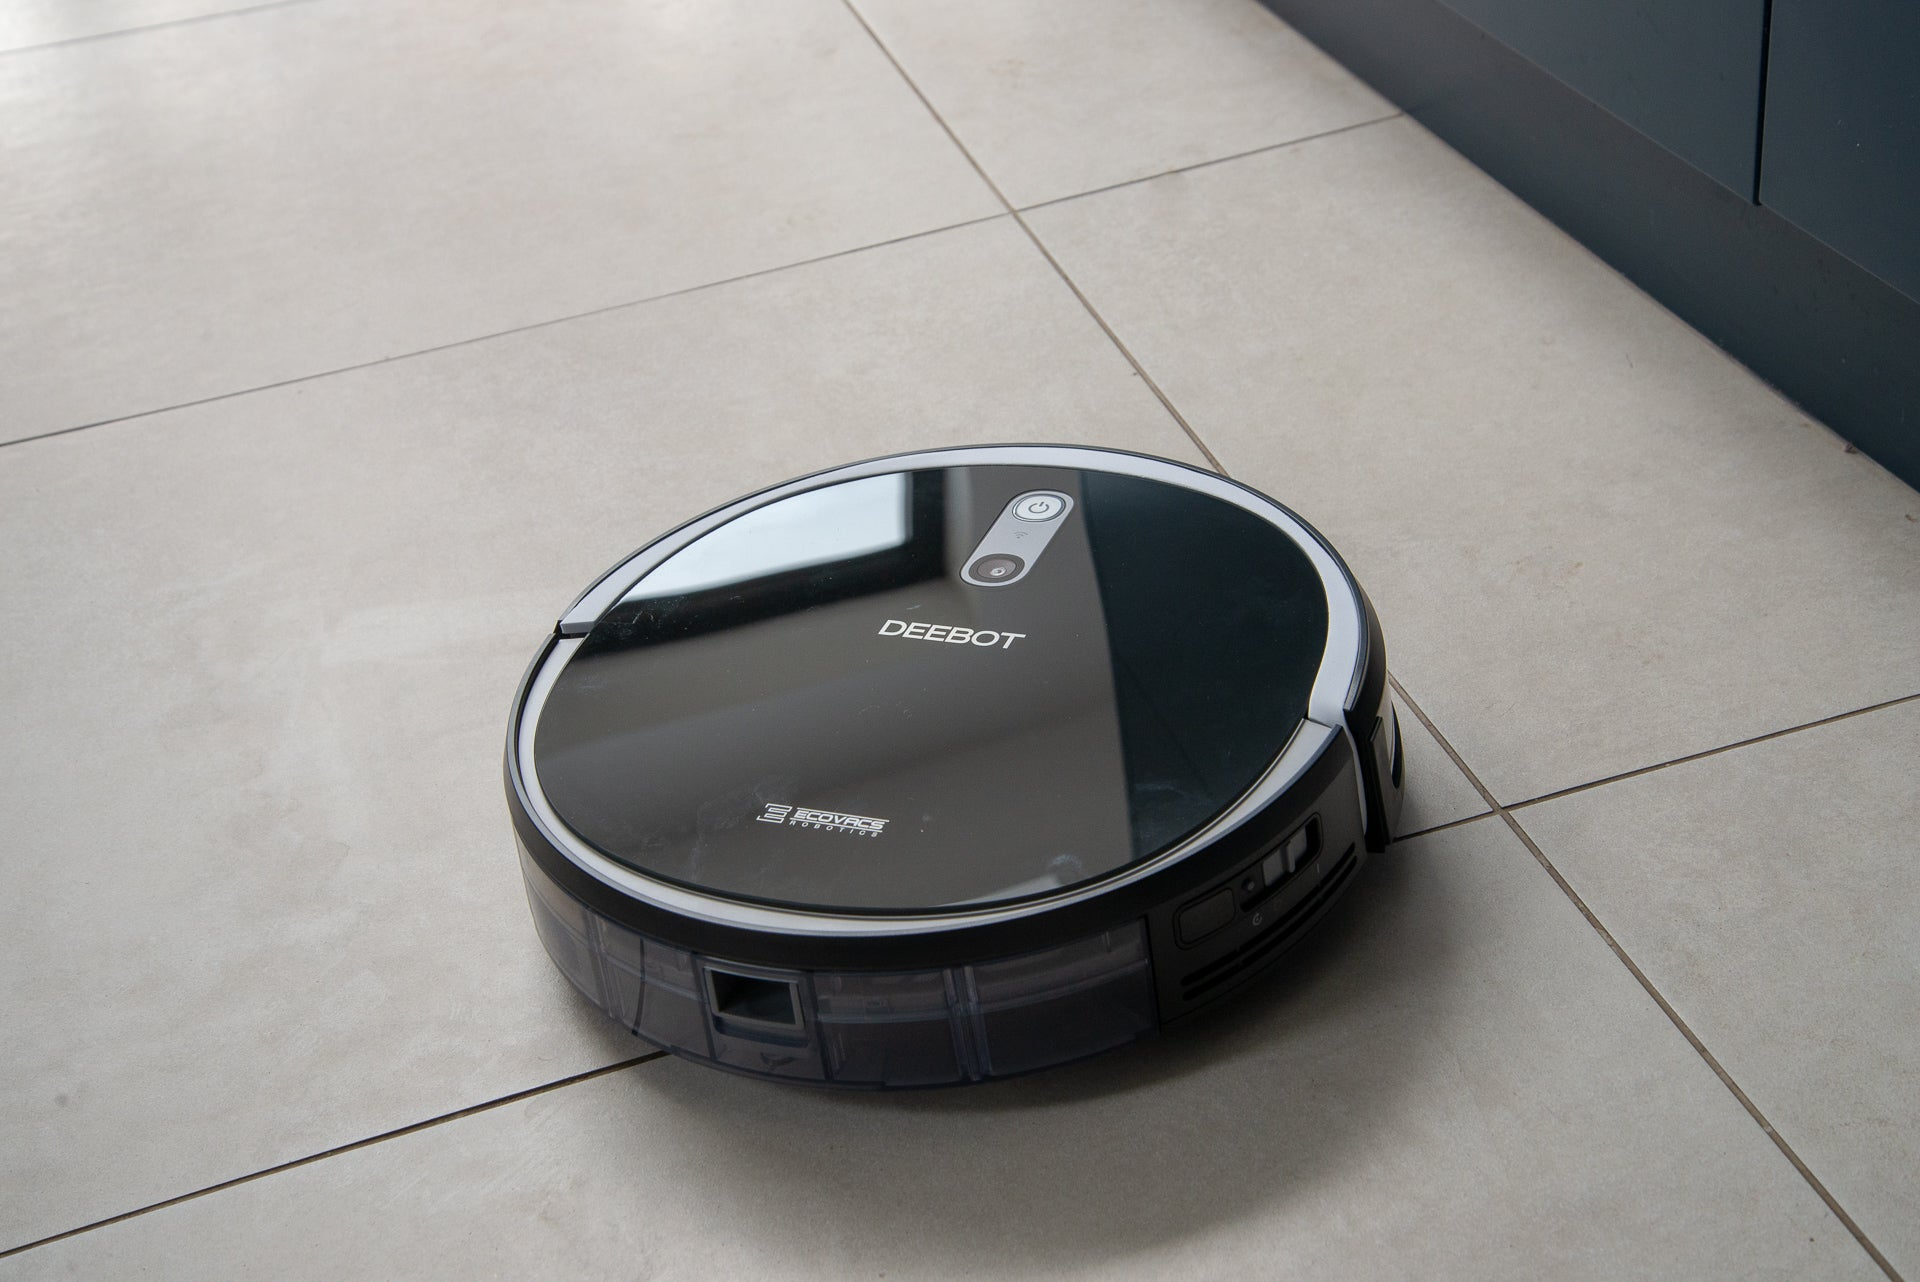 Best robot vacuum for carpets, hardwood